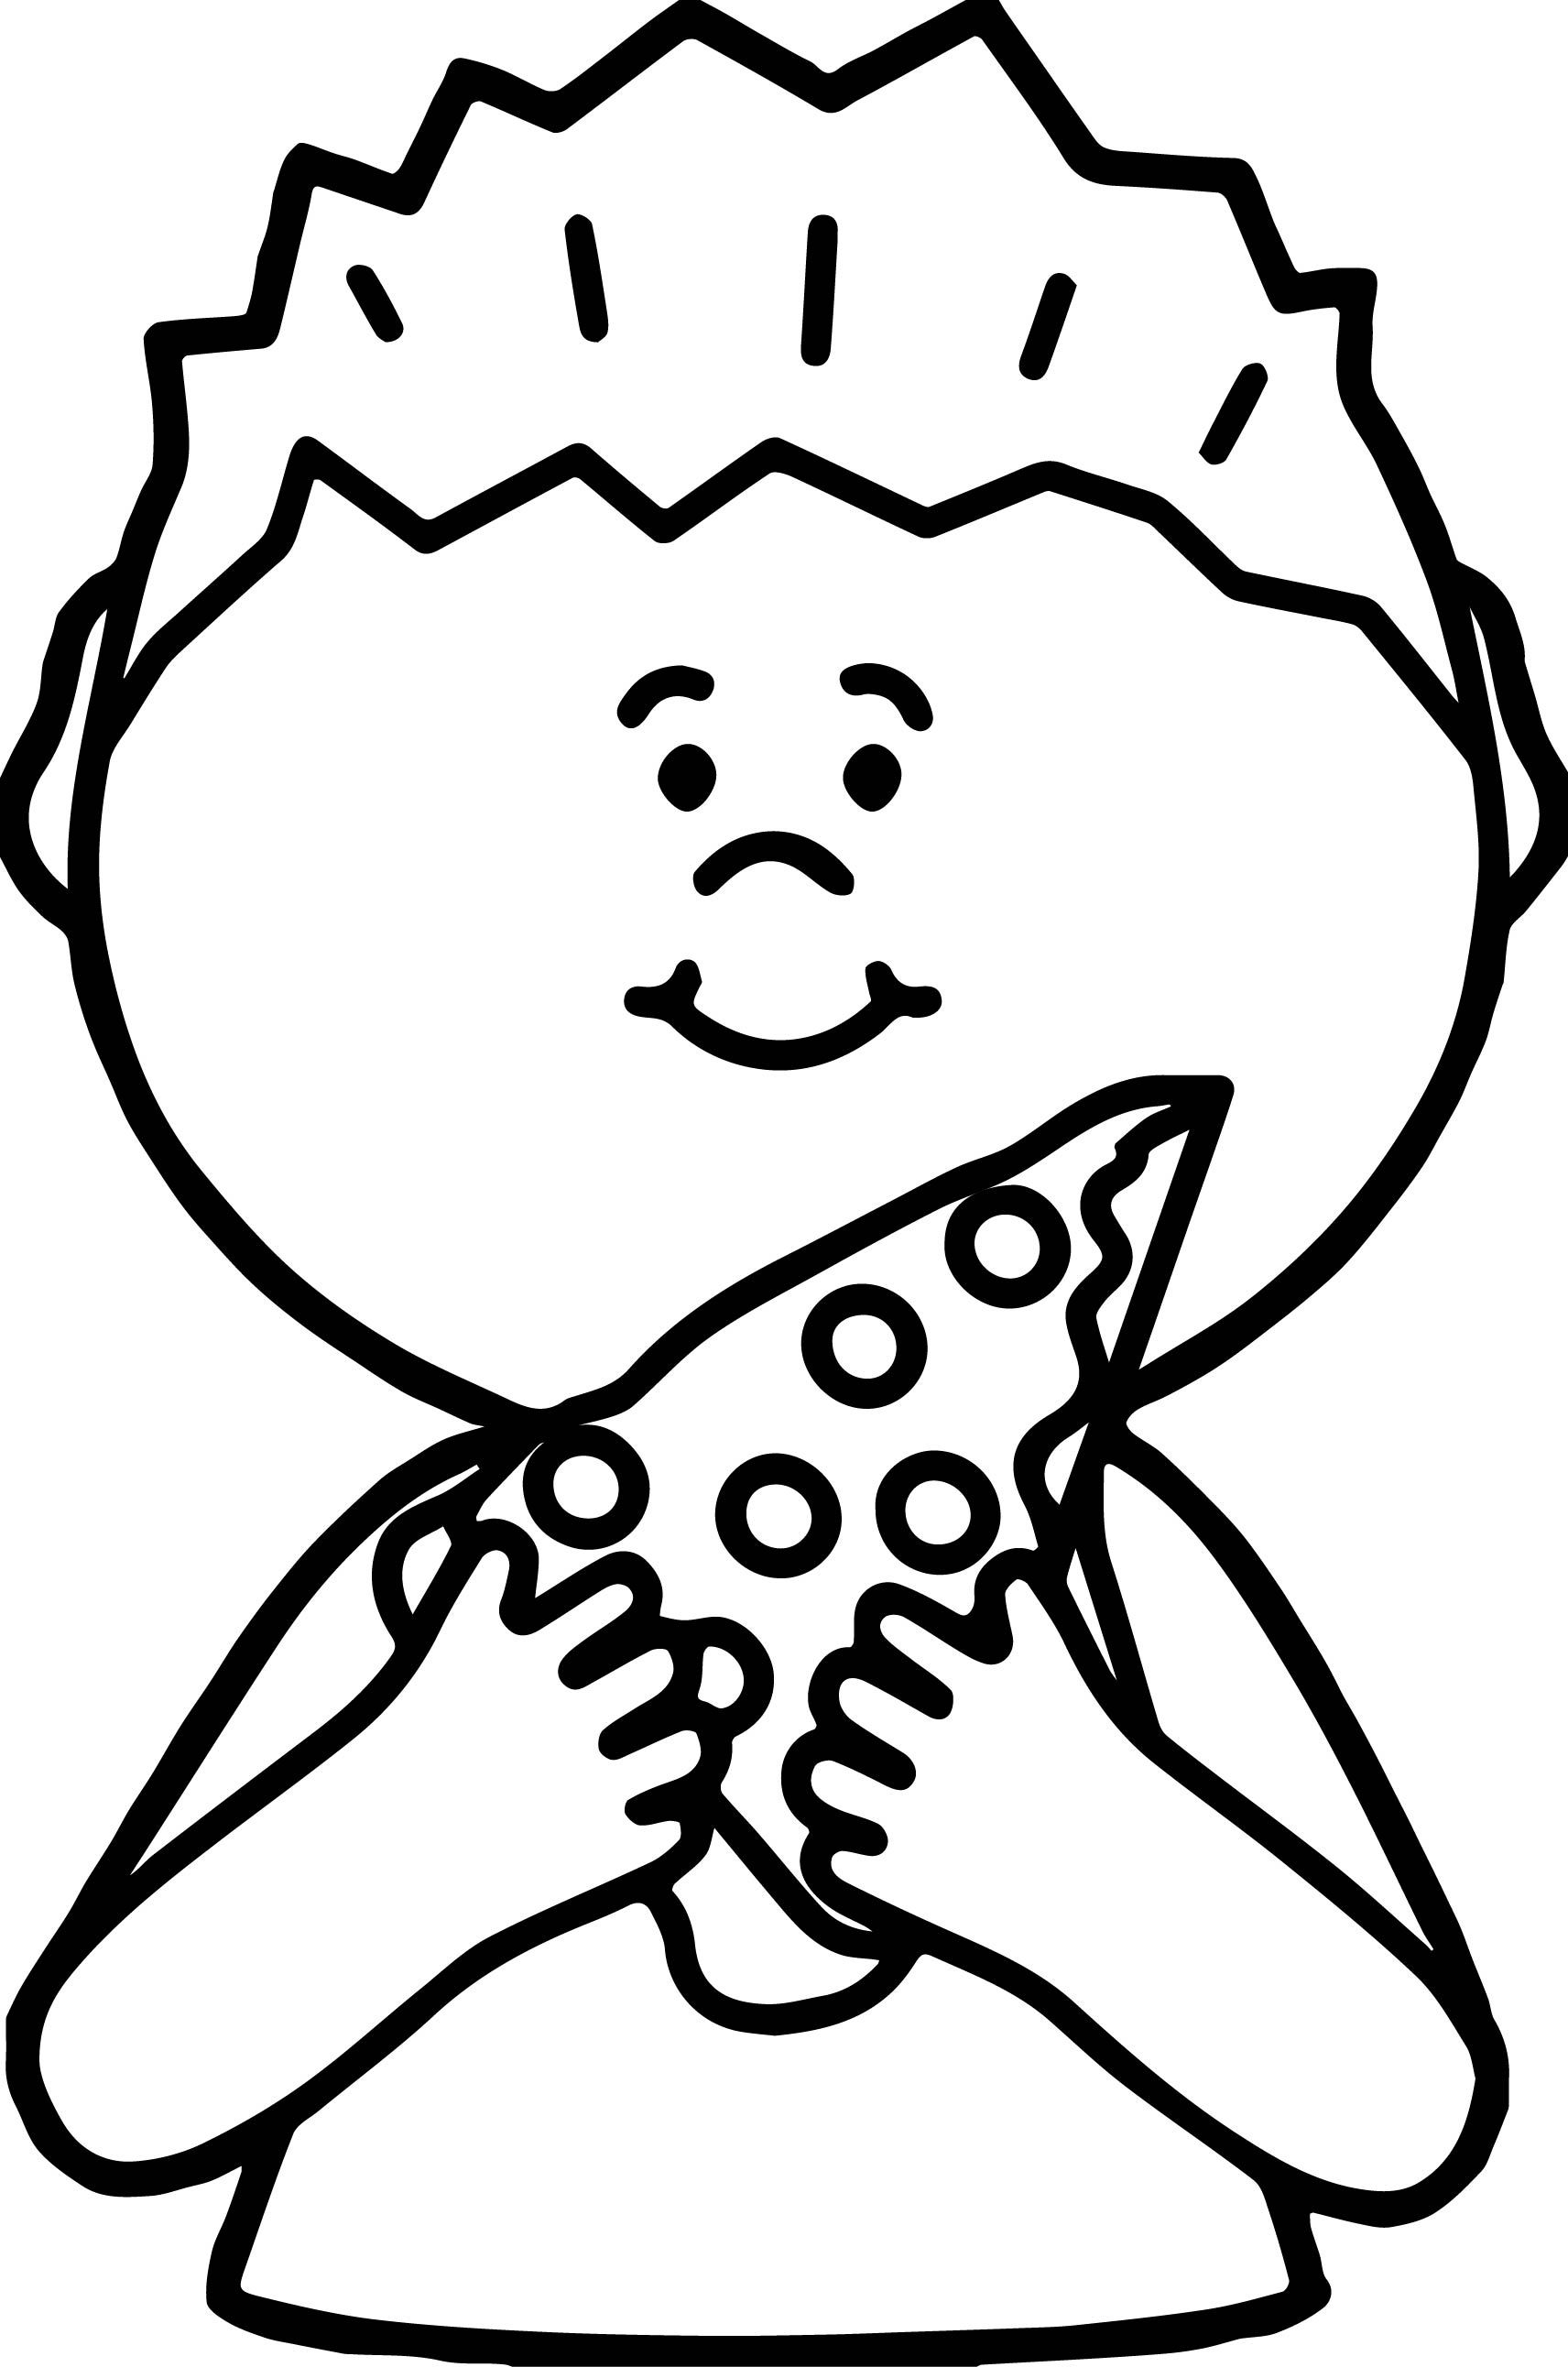 Kids eating pizza clipart black and white image free download awesome Boy Eating Pizza Coloring Page | Food and drinks | Pizza ... image free download